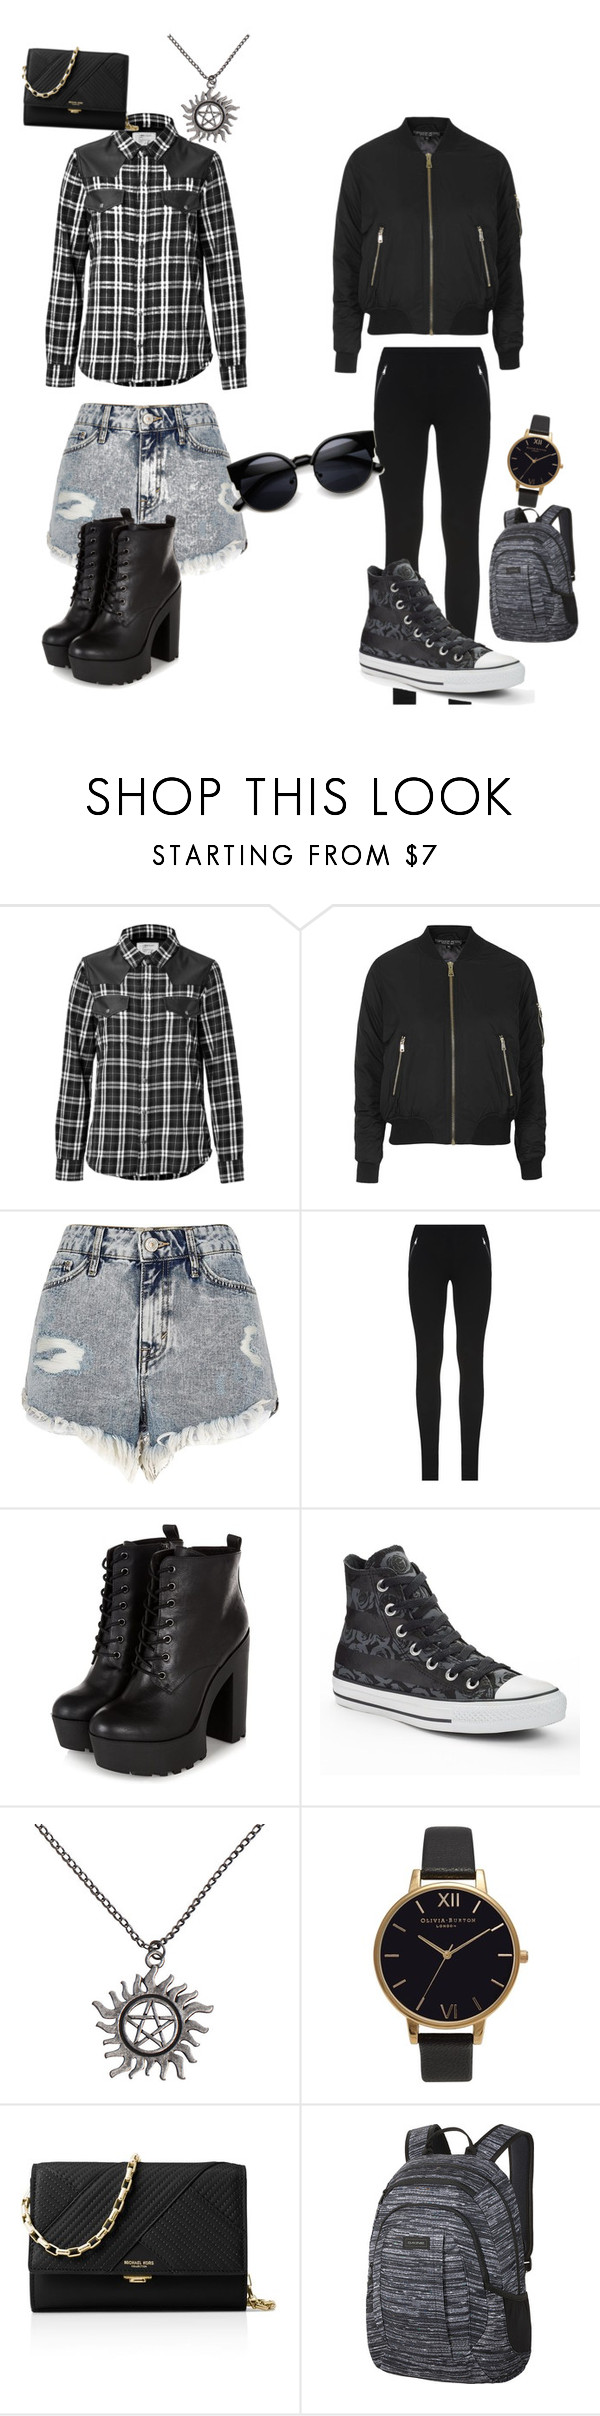 """Bff outfits"" by baconkat ❤ liked on Polyvore featuring Current/Elliott, Topshop, River Island, Emilio Pucci, Converse, Olivia Burton, Michael Kors and Dakine"